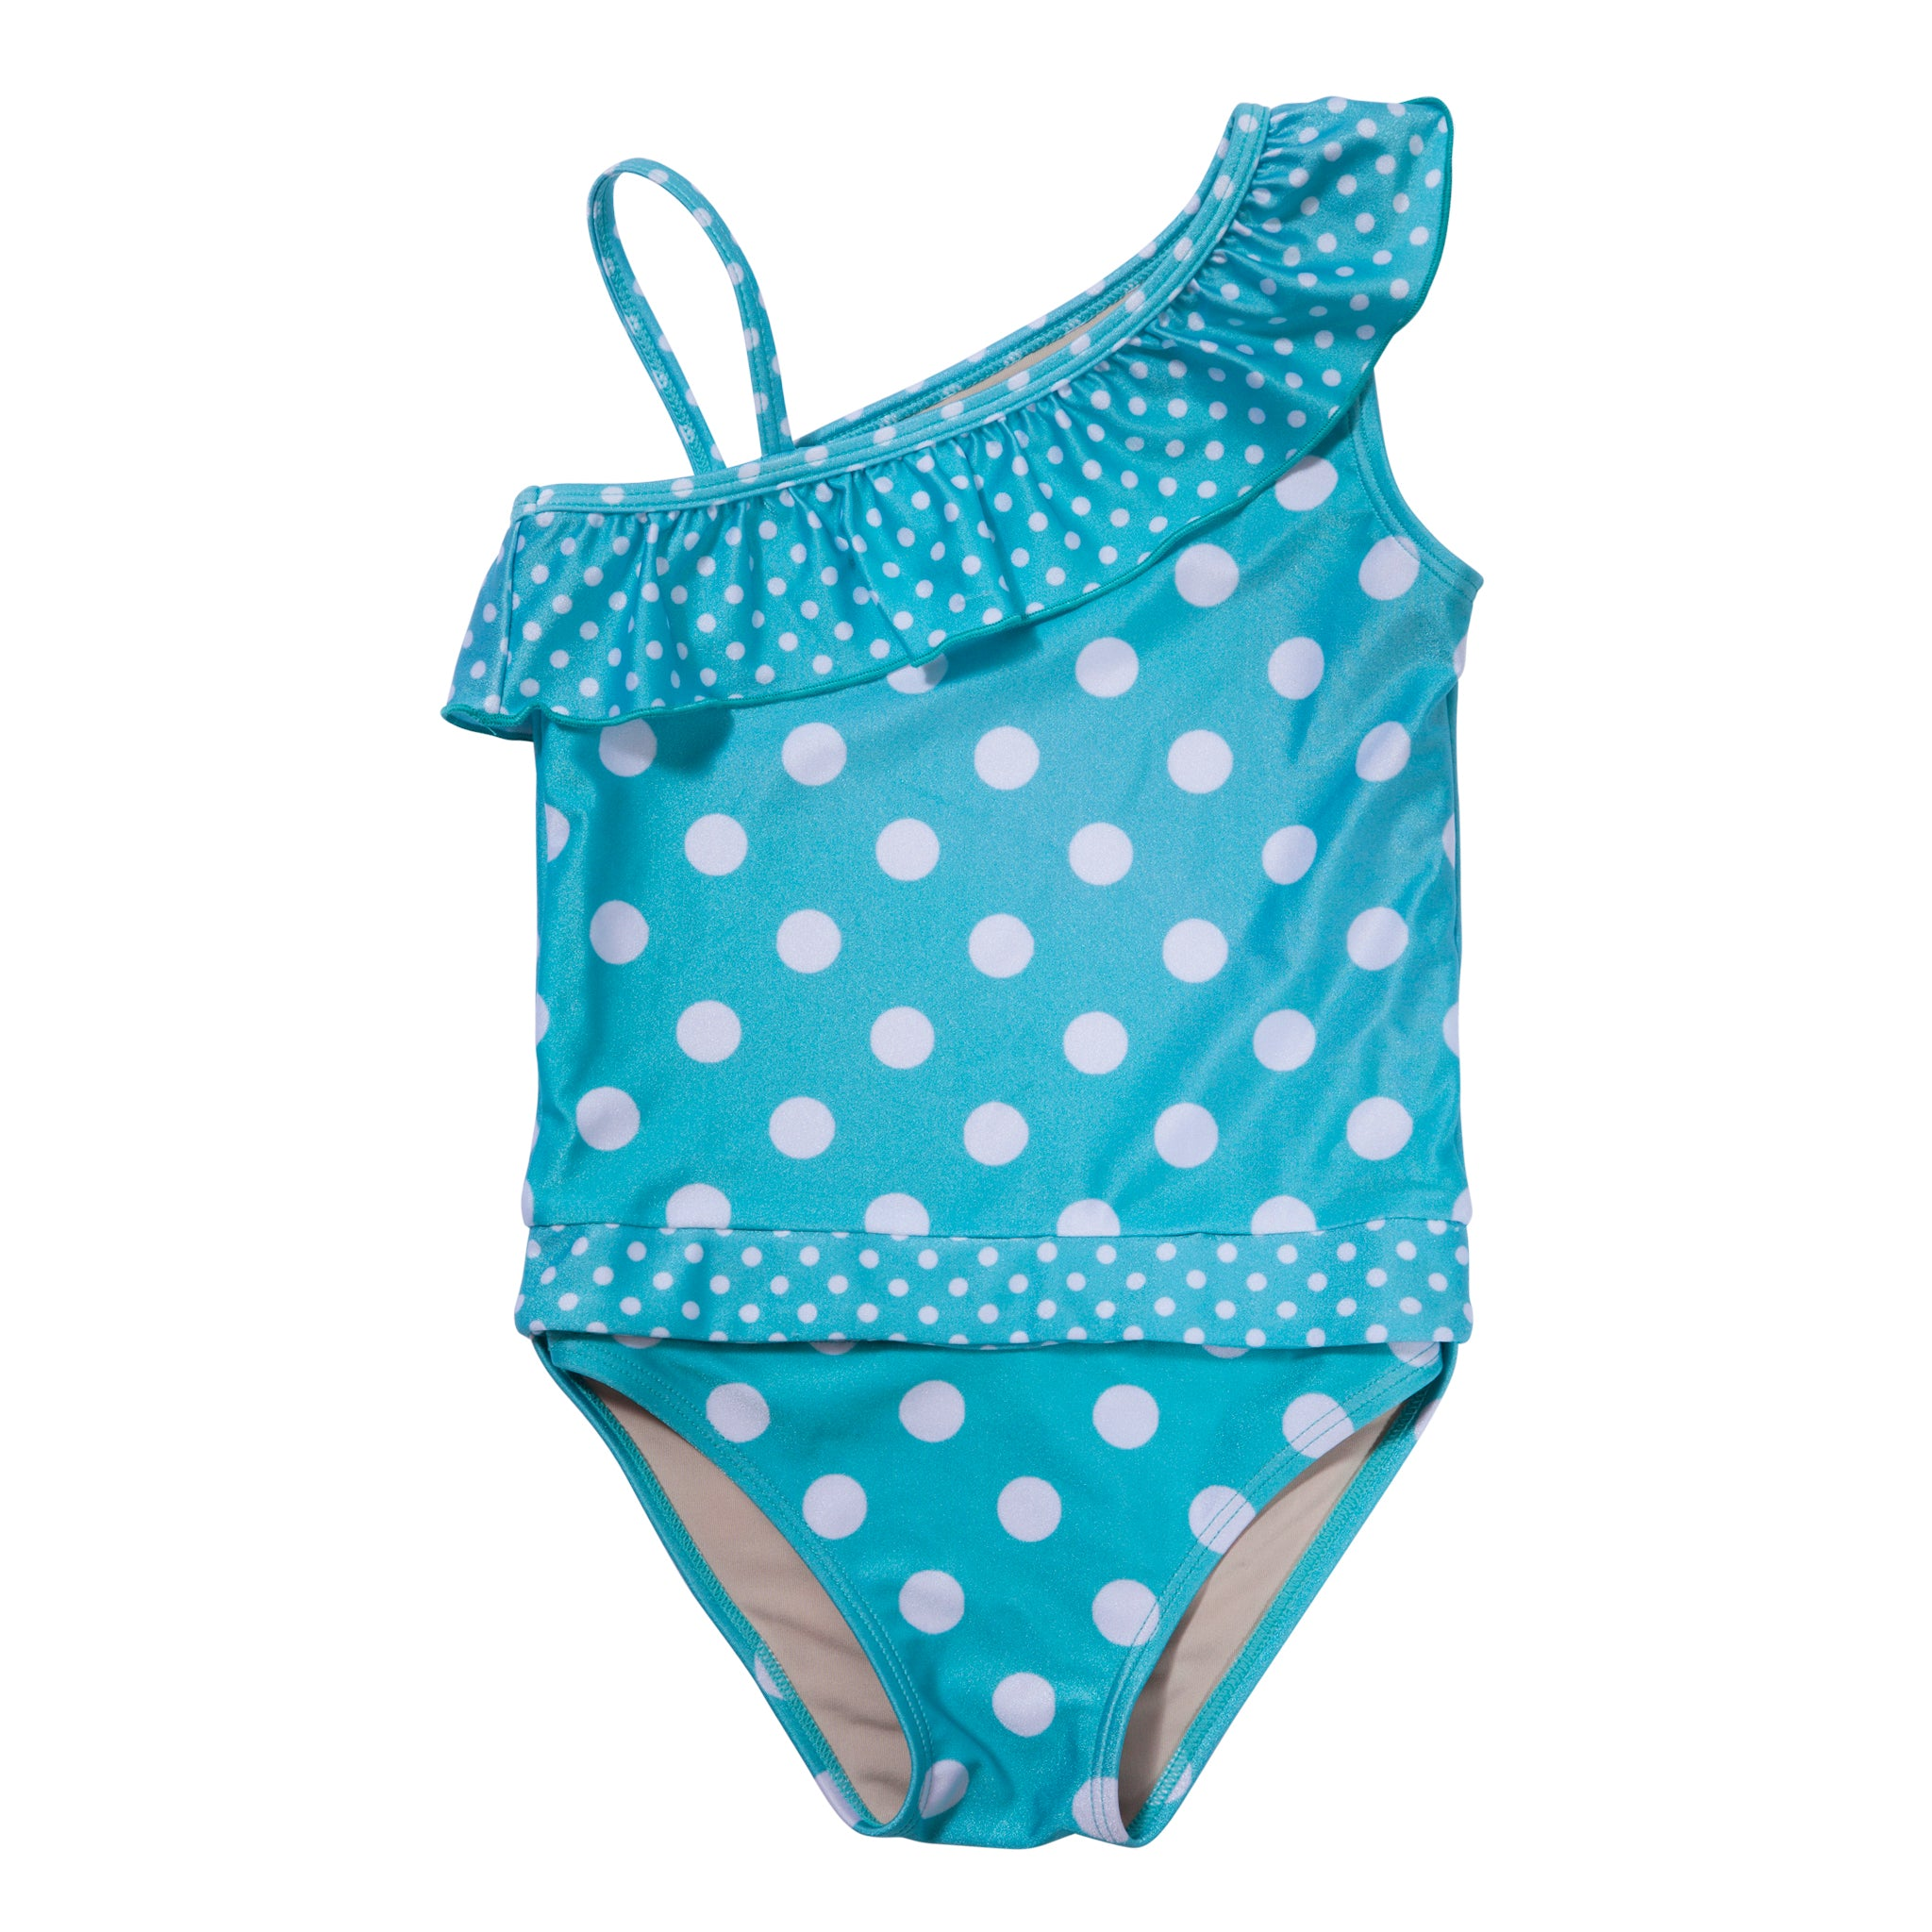 1ba1195ac1 ... Aqua Polka Dot girl swimsuit with ruffle by FASTEN. Features patented  design that opens at ...